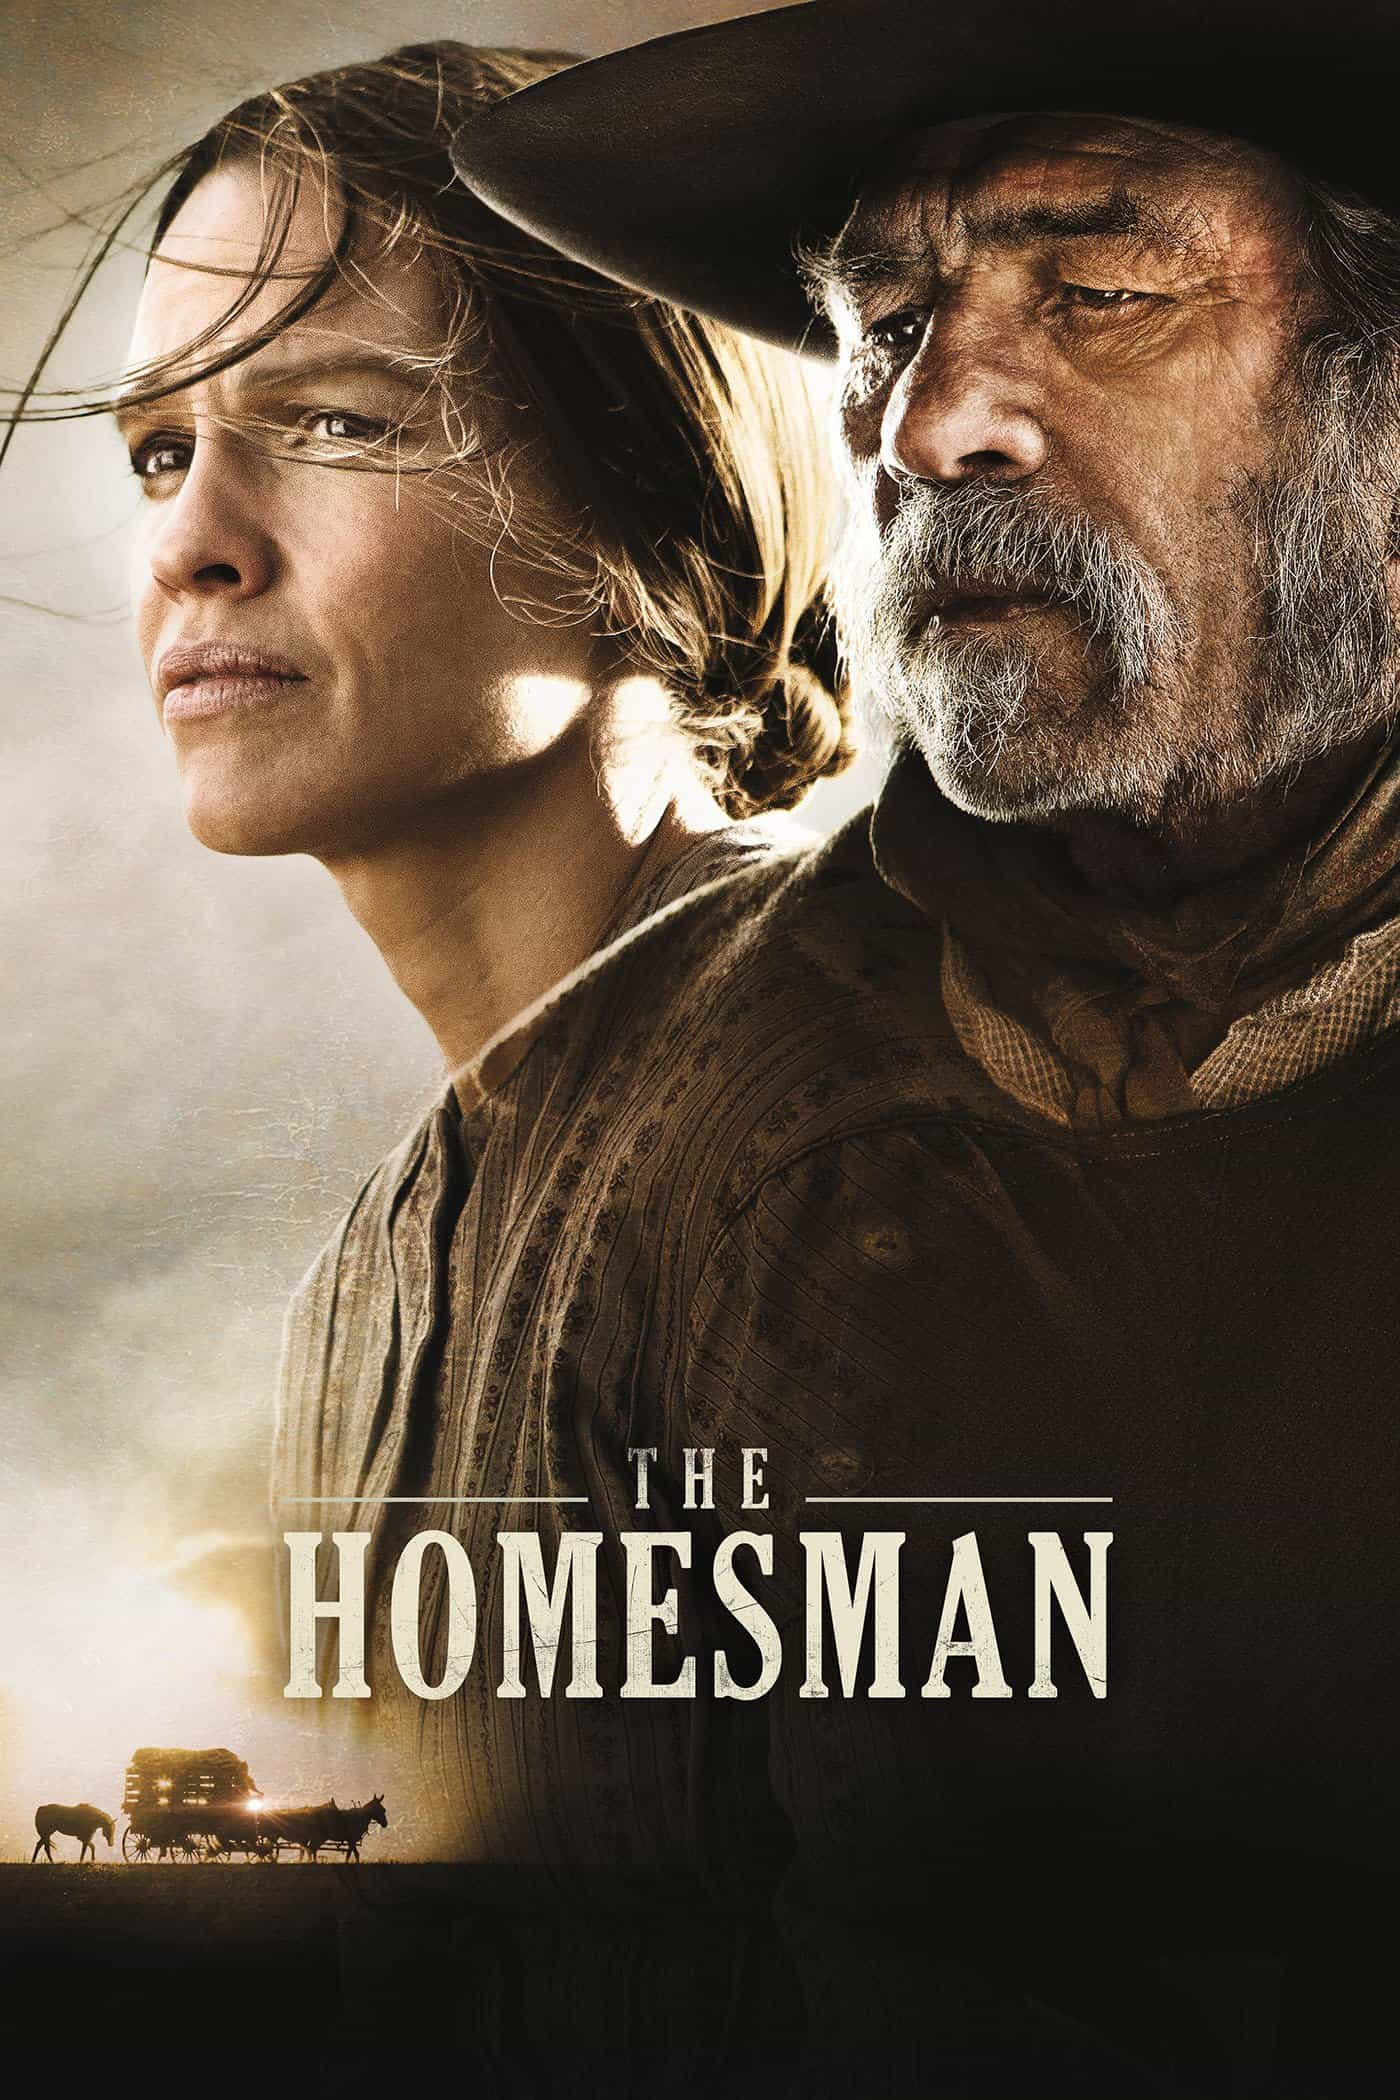 The Homesman, 2014